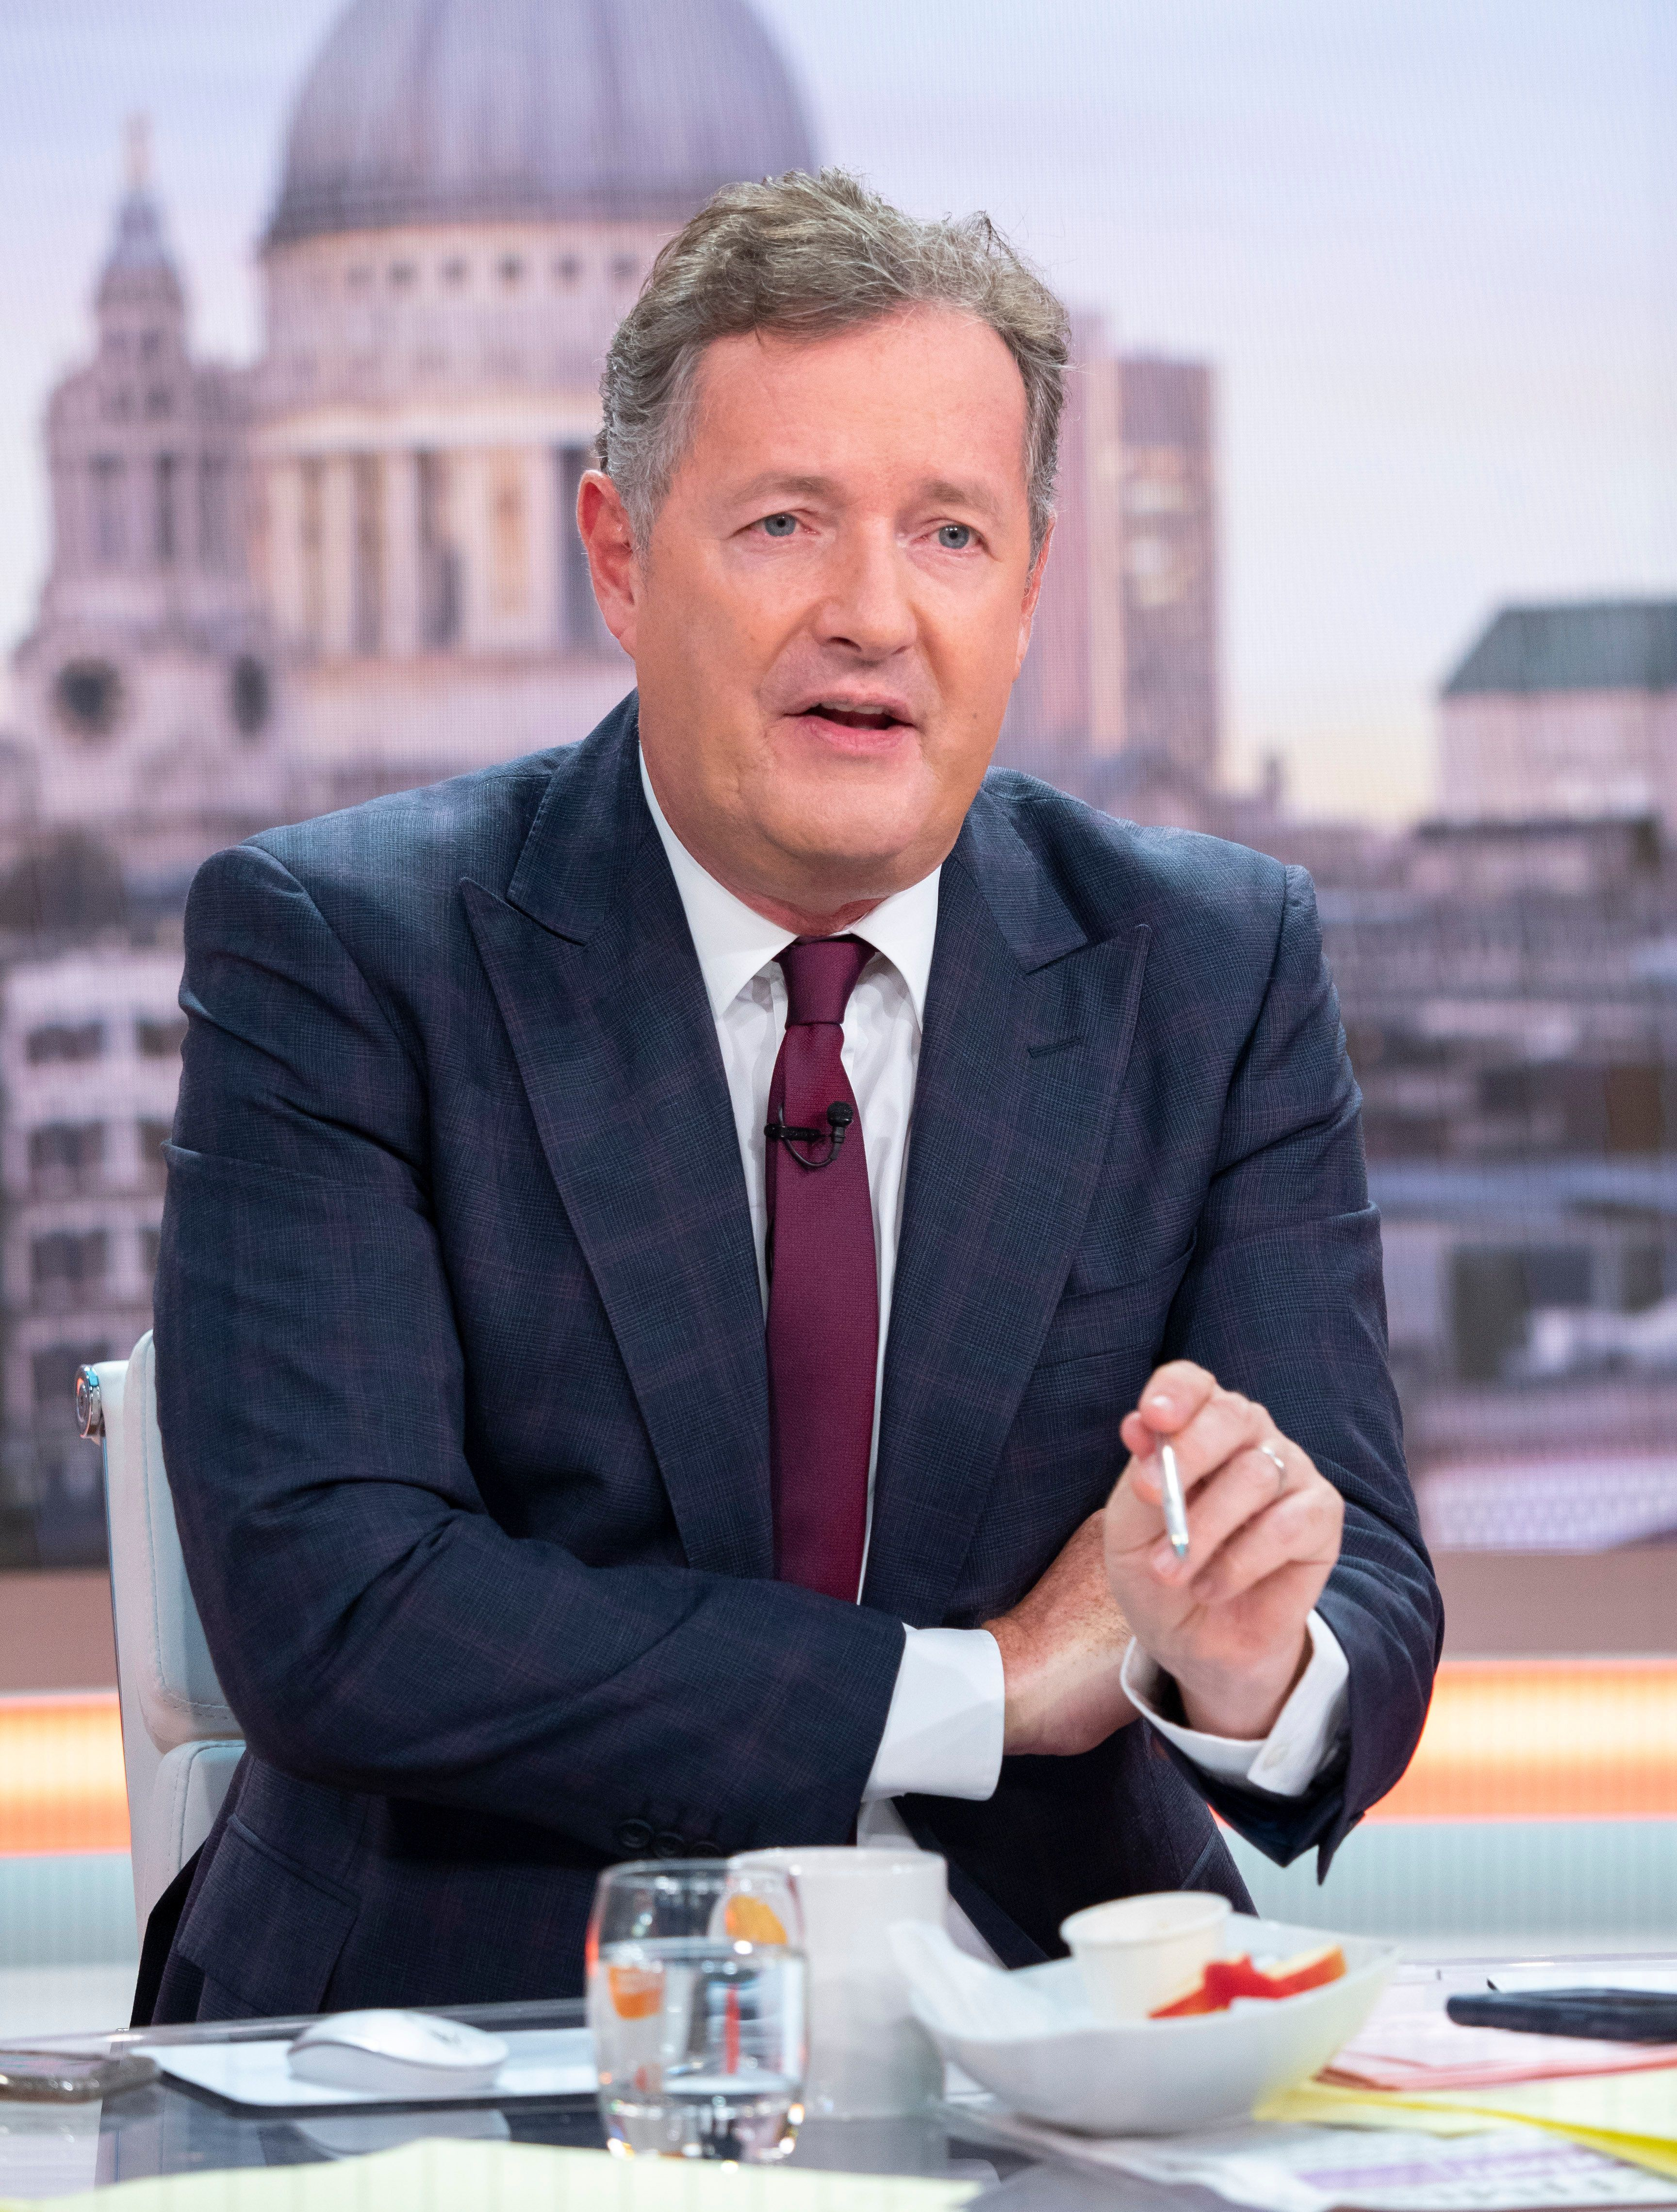 Piers Morgan Takes Swipe At Ant McPartlin's TV Choice Awards Win: 'At Least I Pitched Up For